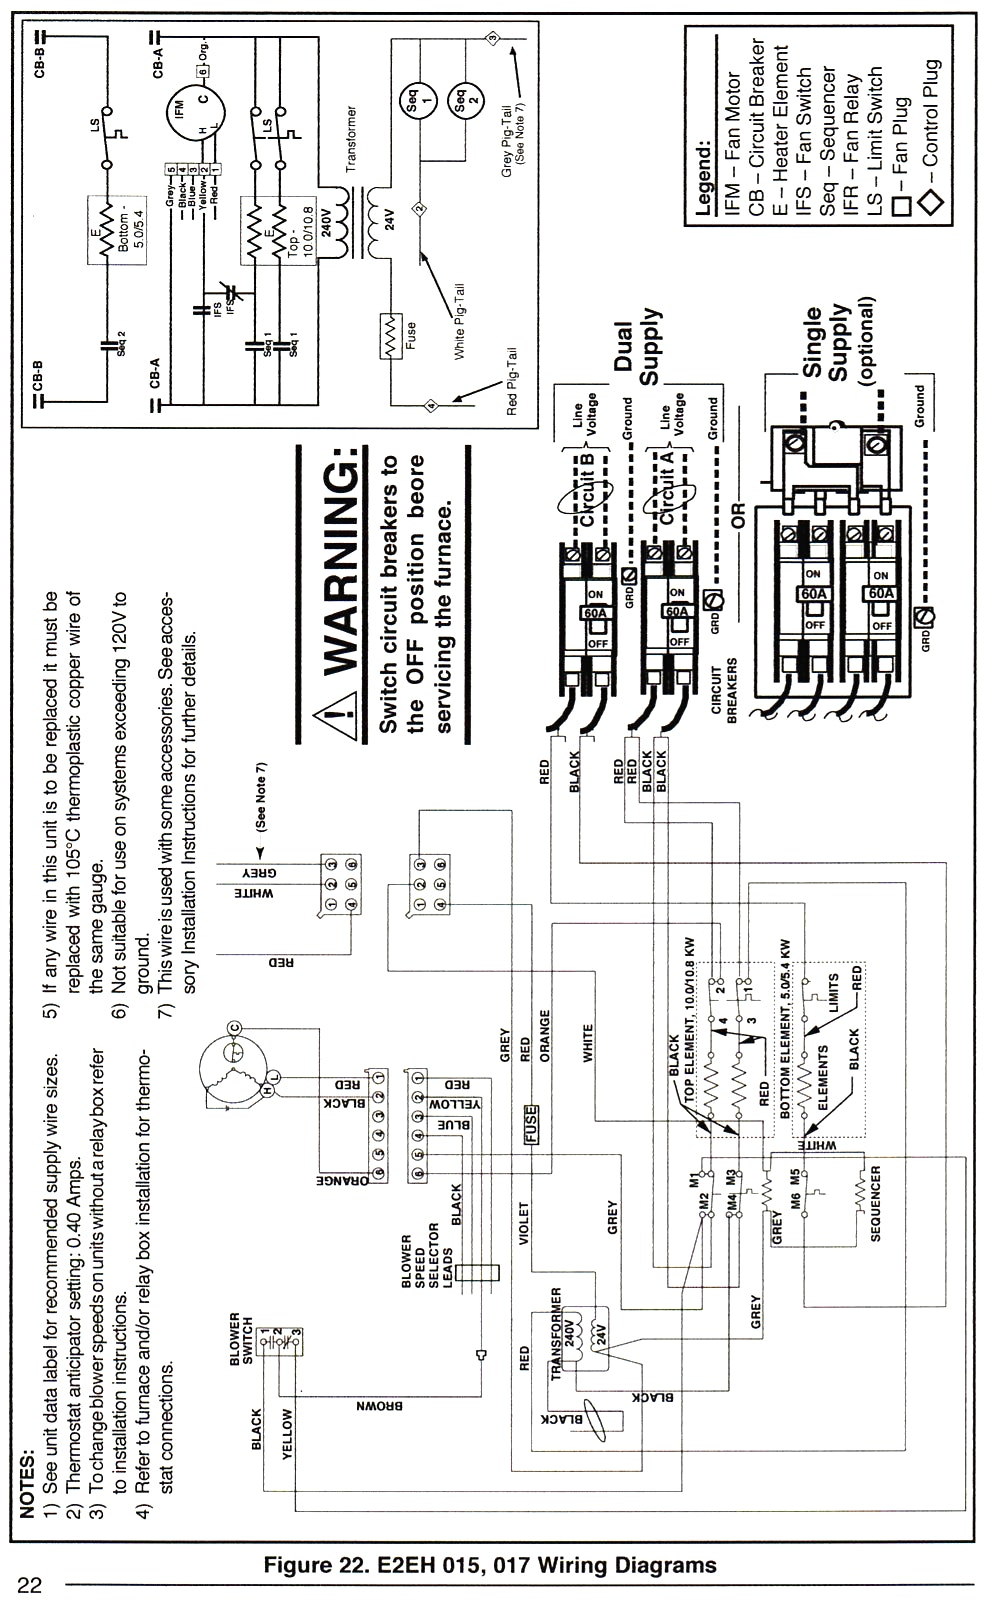 intertherm heat pump wiring diagram Download-Intertherm Electric Furnace Wiring Diagram For Nordyne Heat Pump Showy 8-n